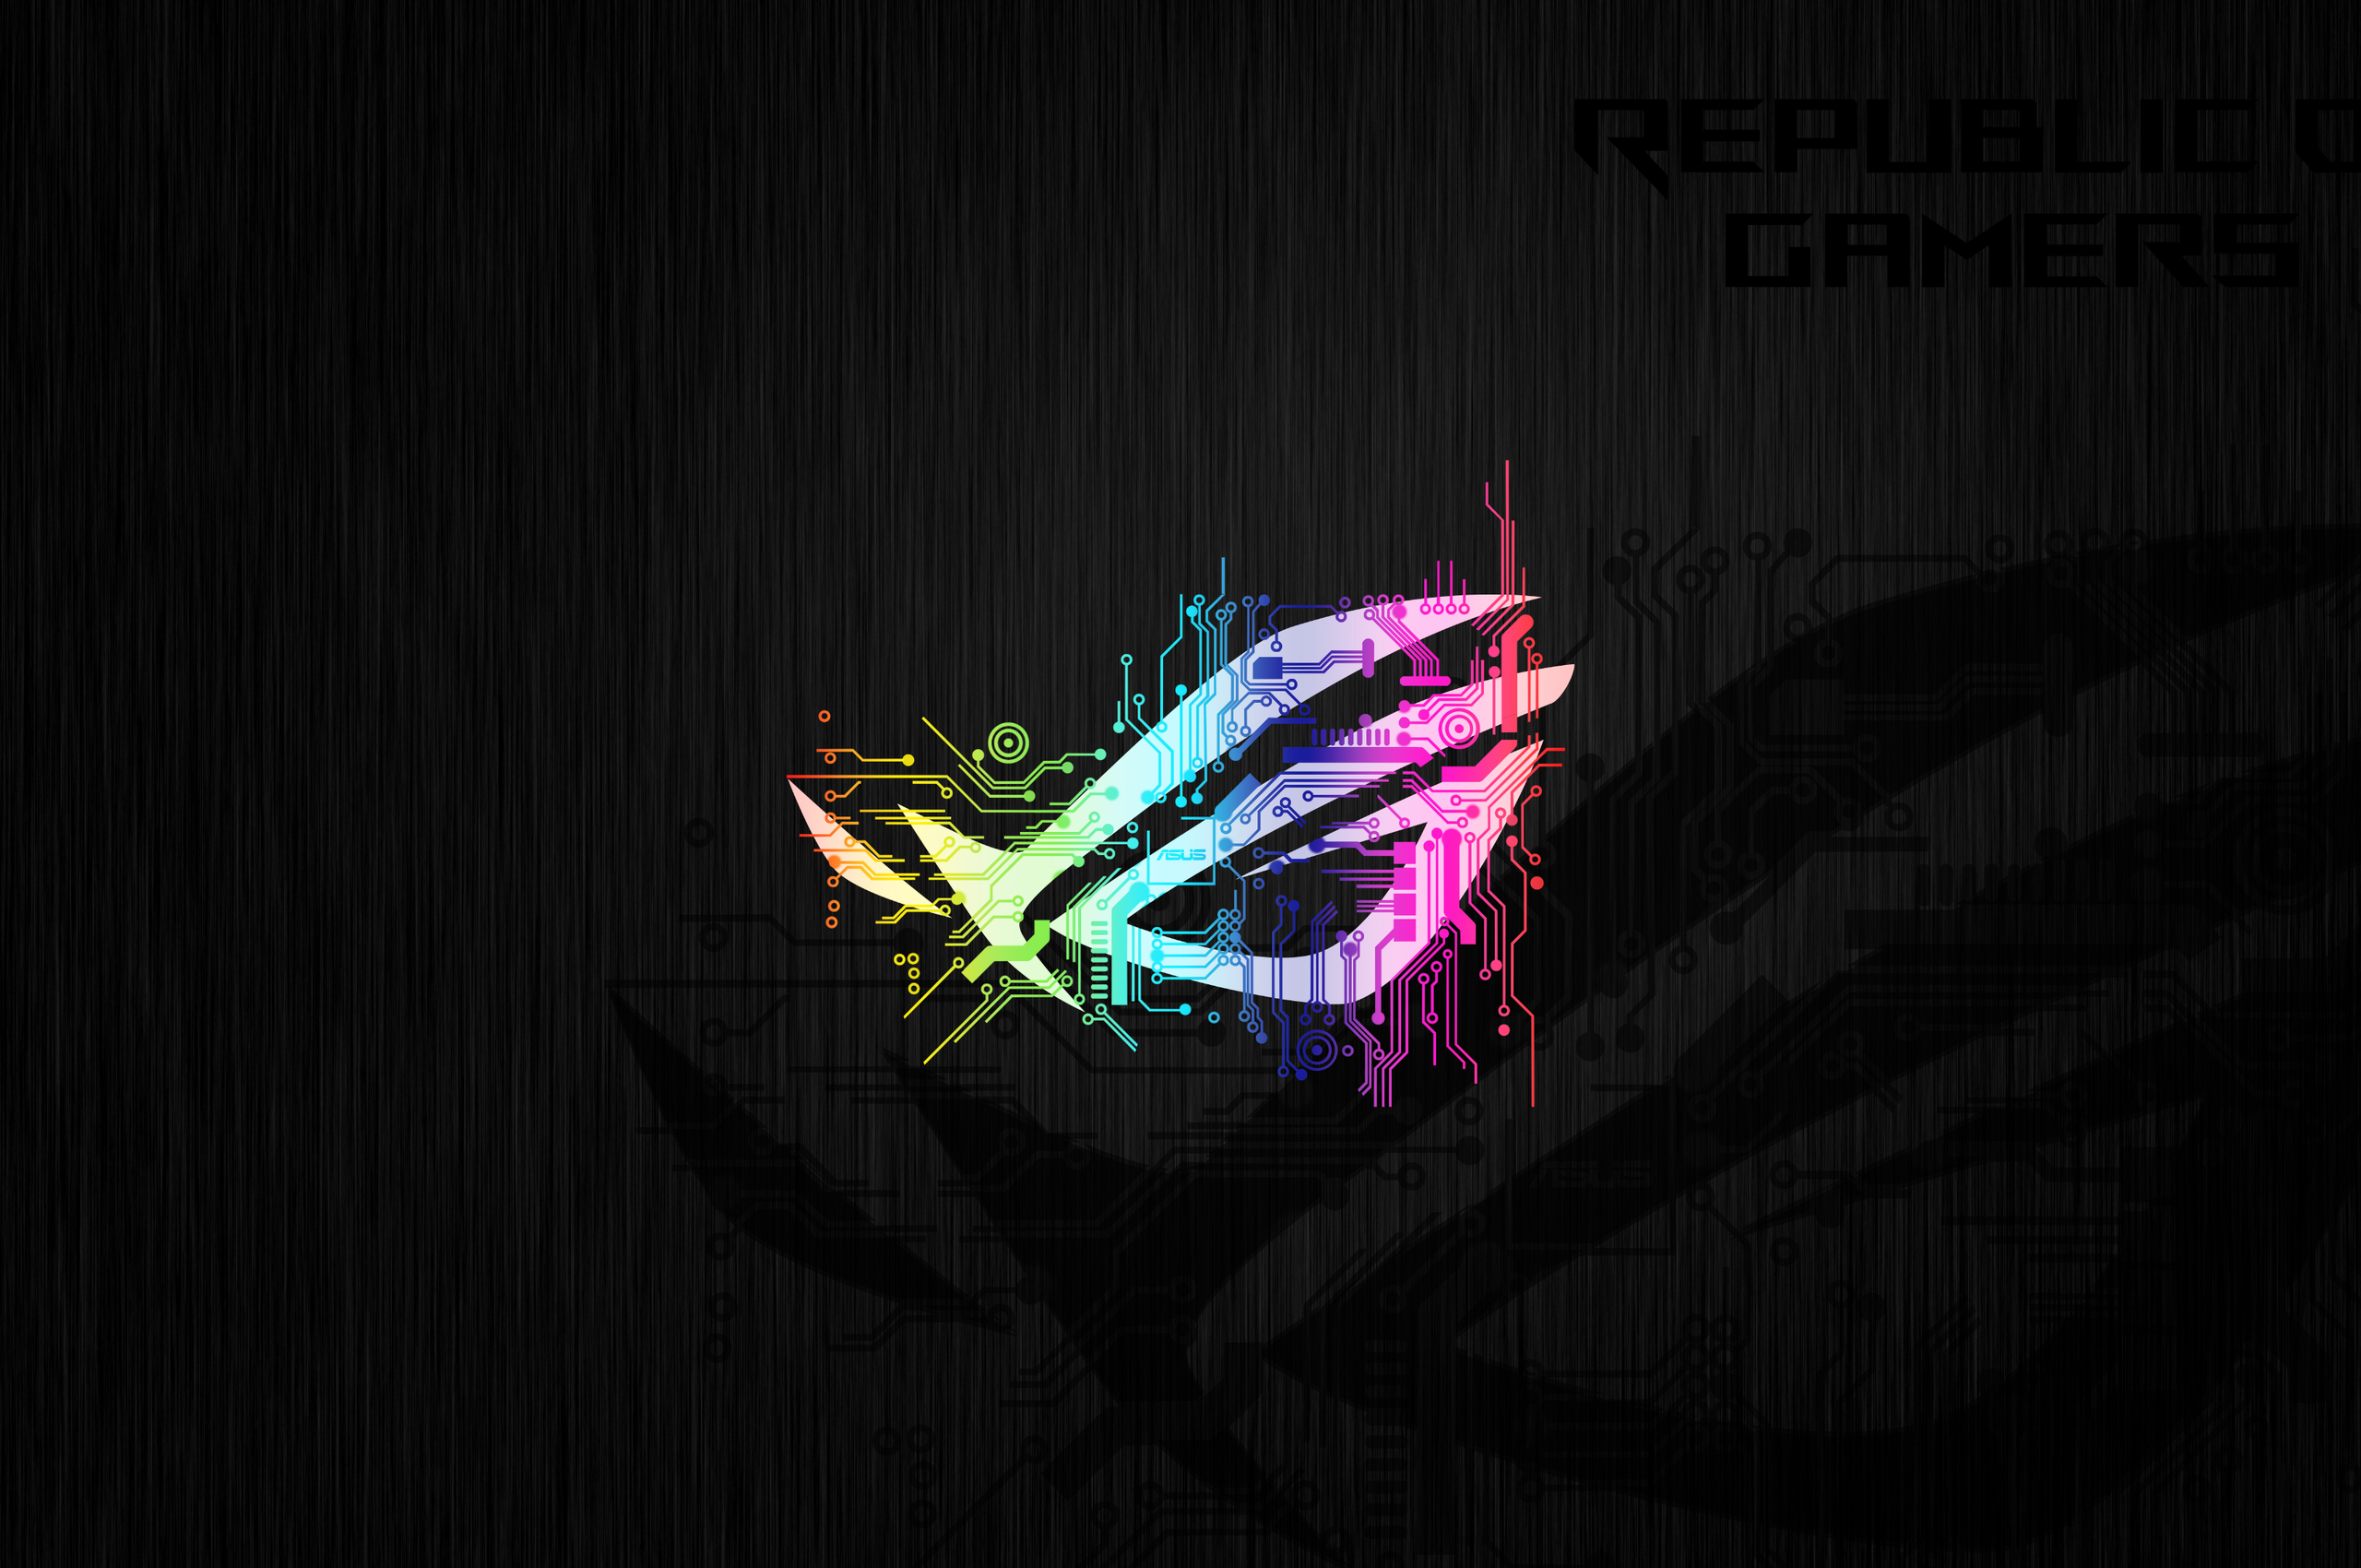 republic-of-gamers-abstract-logo-4k-qk.jpg